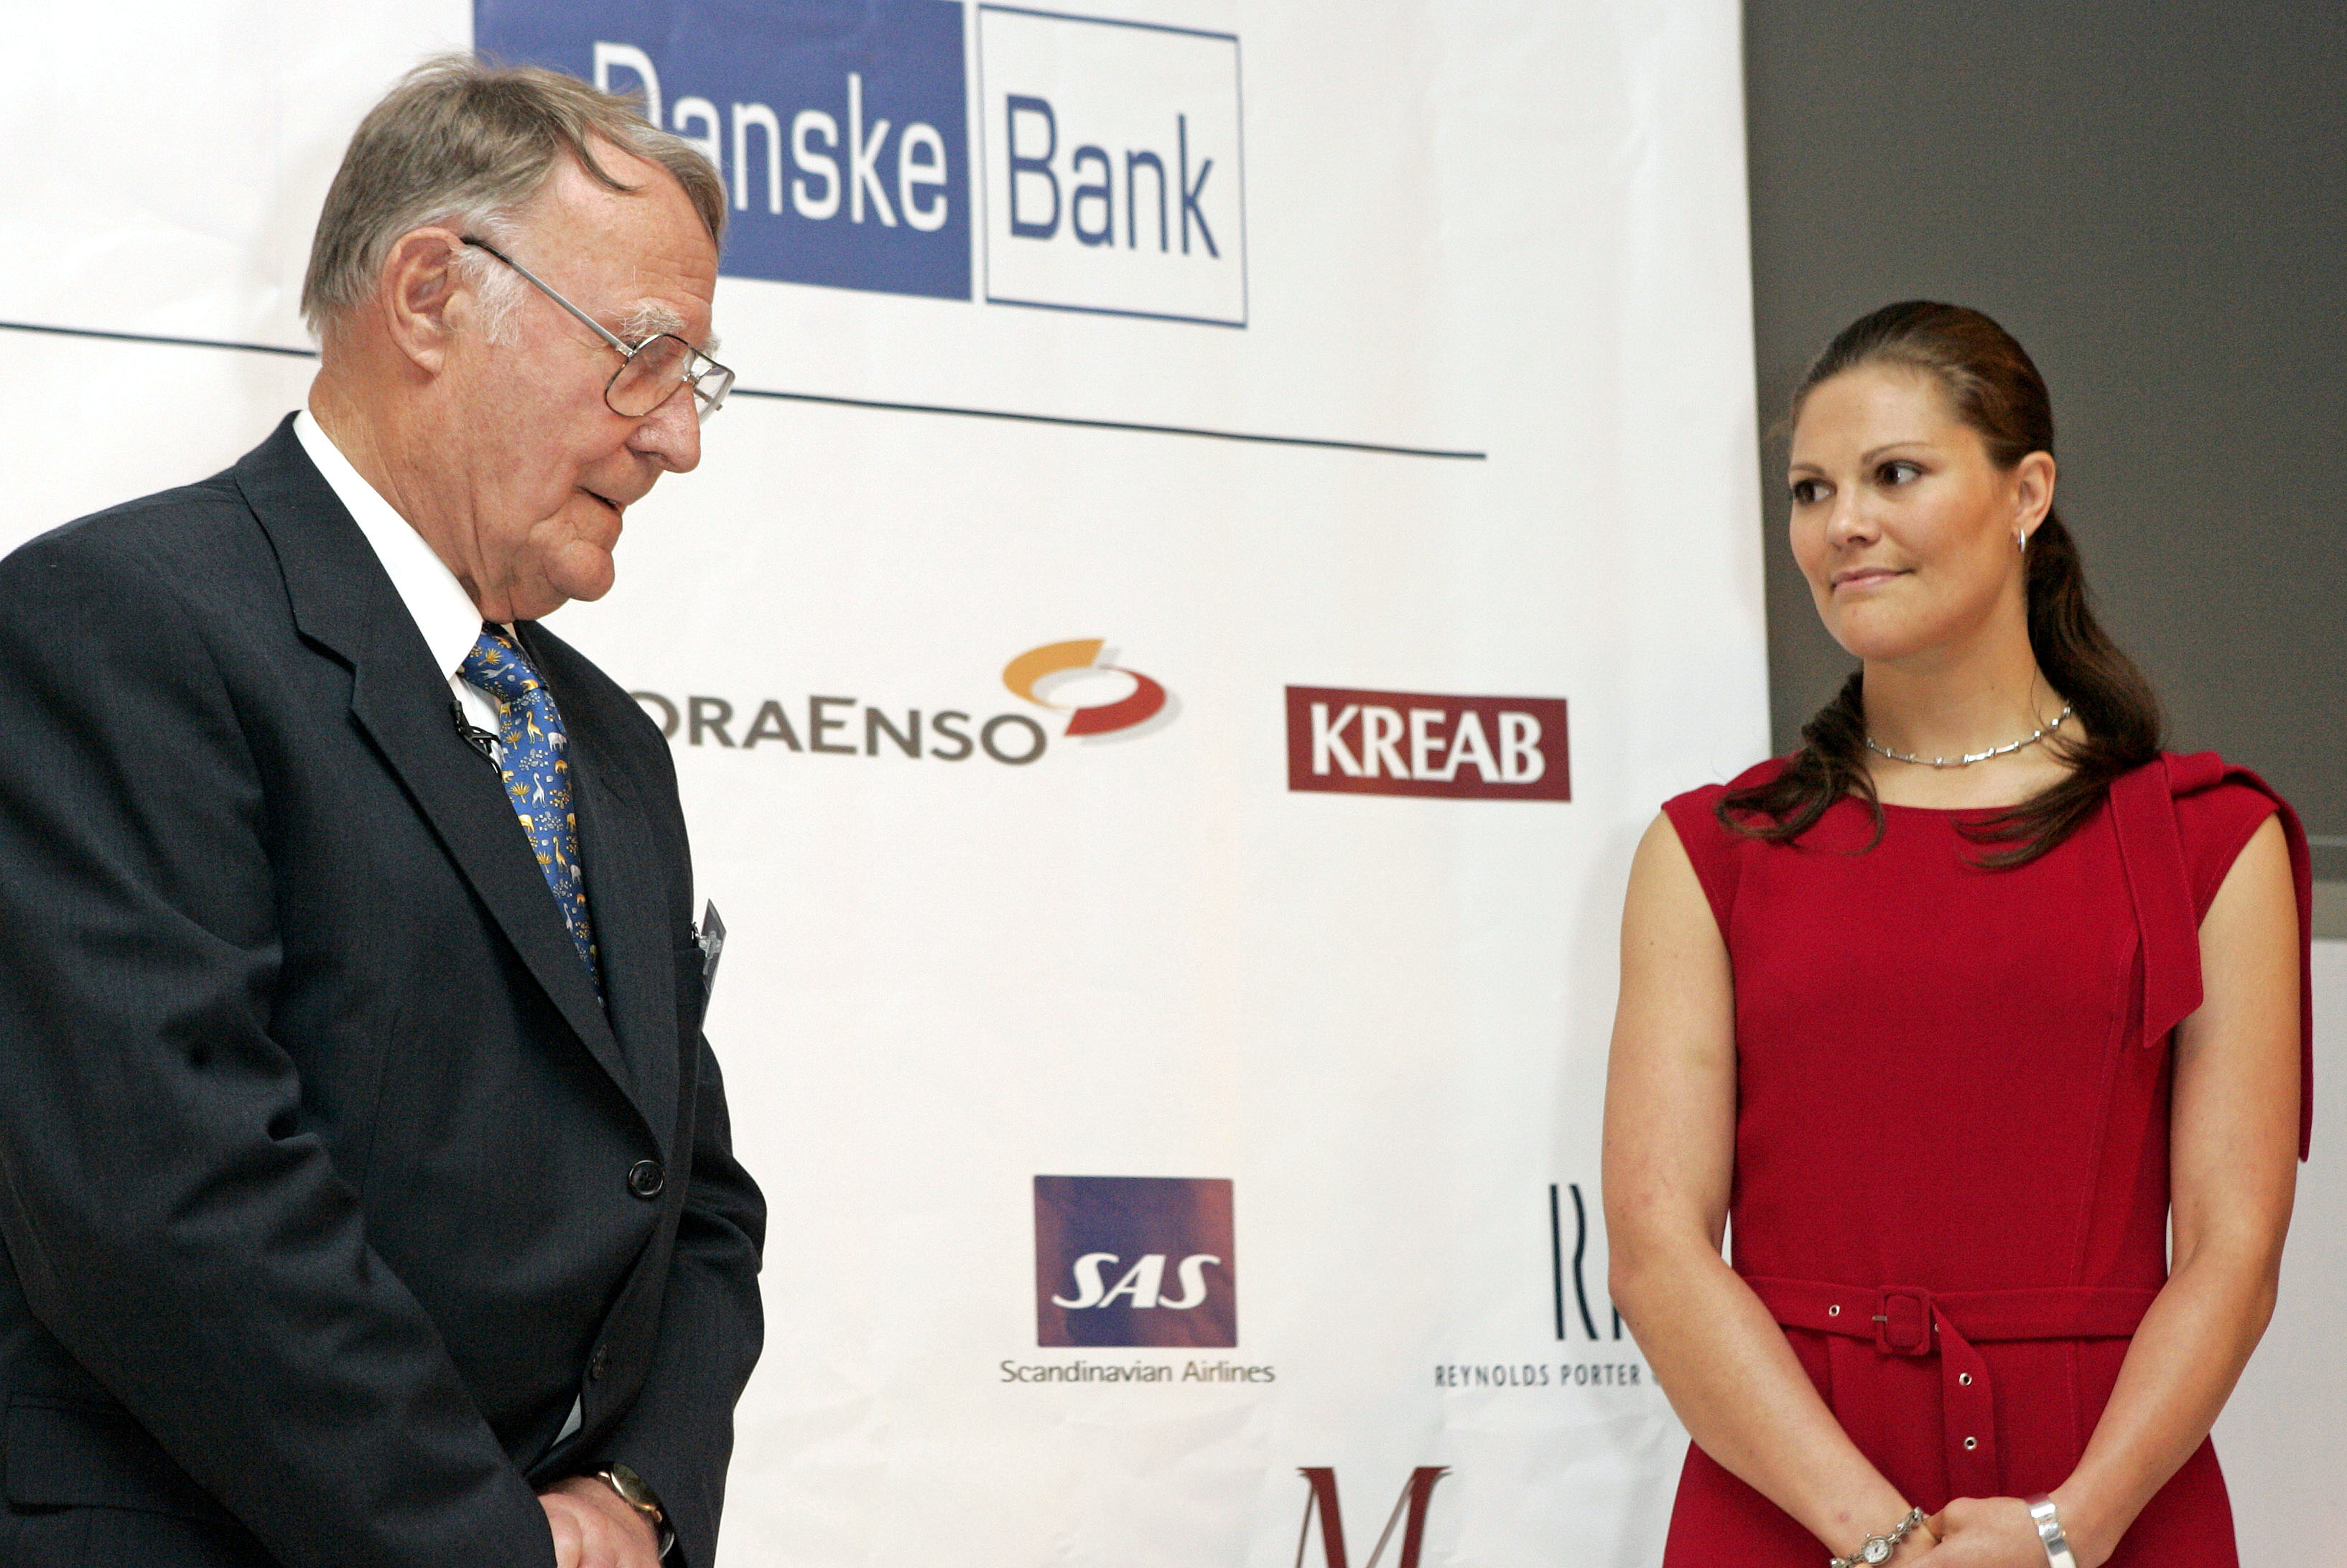 Crown Princess Victoria Attends The Swedish Chamber Of Commerce Centenary Conference